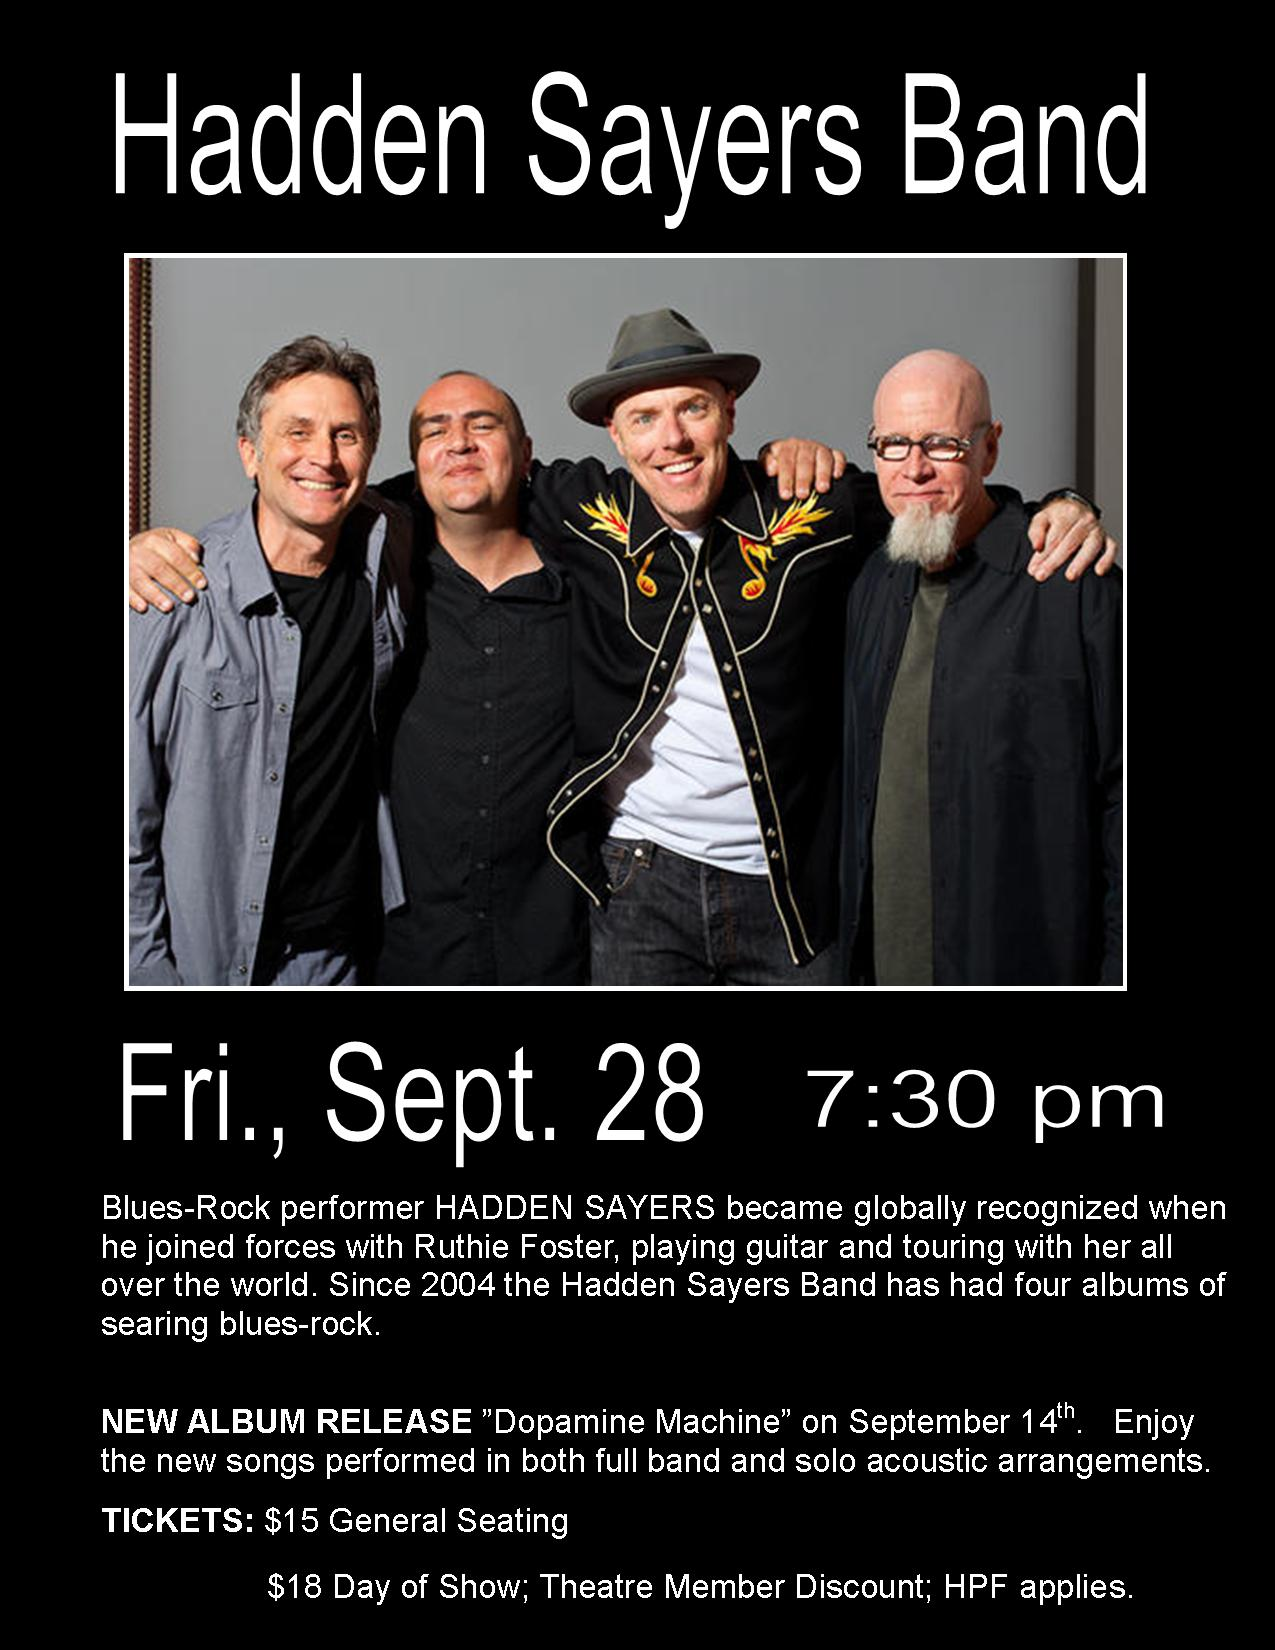 Hadden Sayers Band ~ Fri., Sept. 28 ~ 7:30 pm